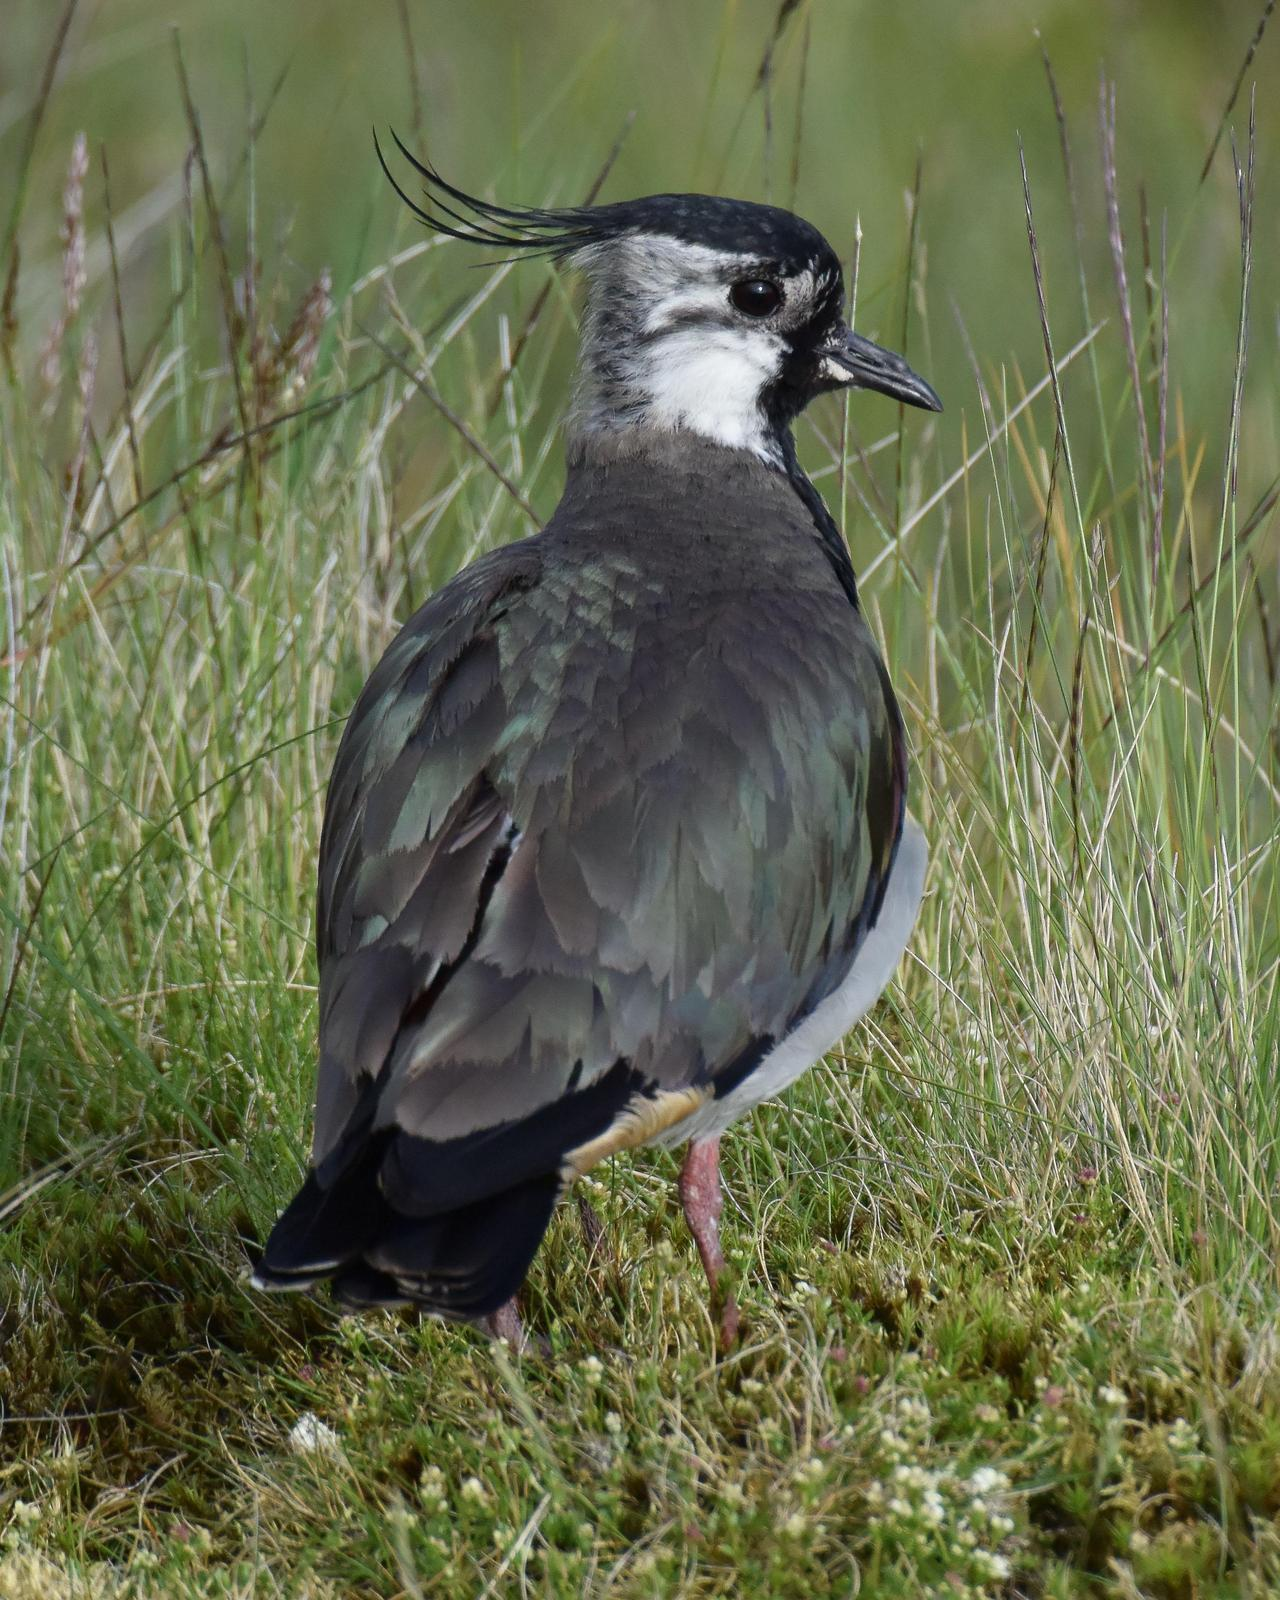 Northern Lapwing Photo by Steve Percival